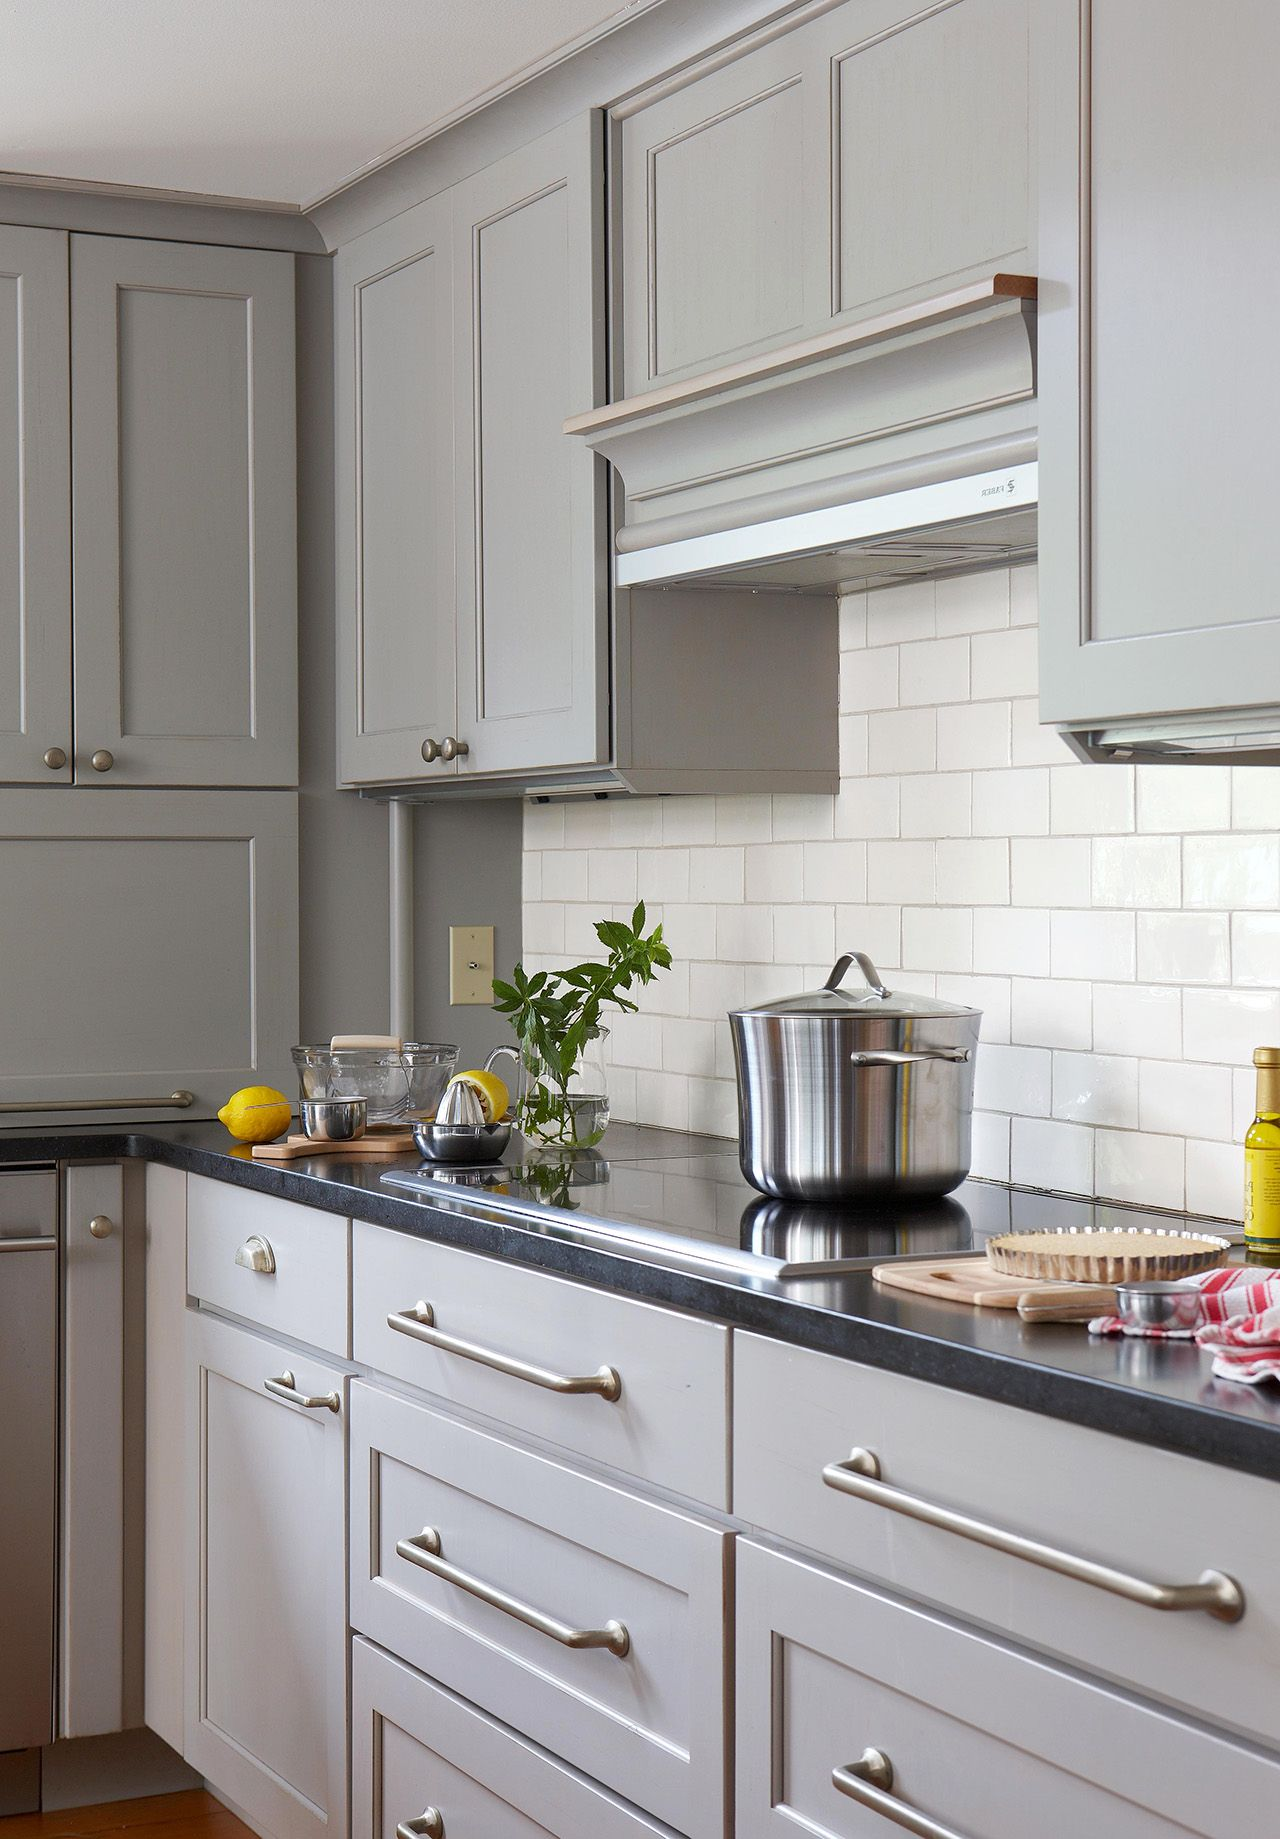 Cabinet Paint Color Trends And How To Choose Timeless Colors Painted Kitchen Cabinets Colors Painting Cabinets Kitchen Colors